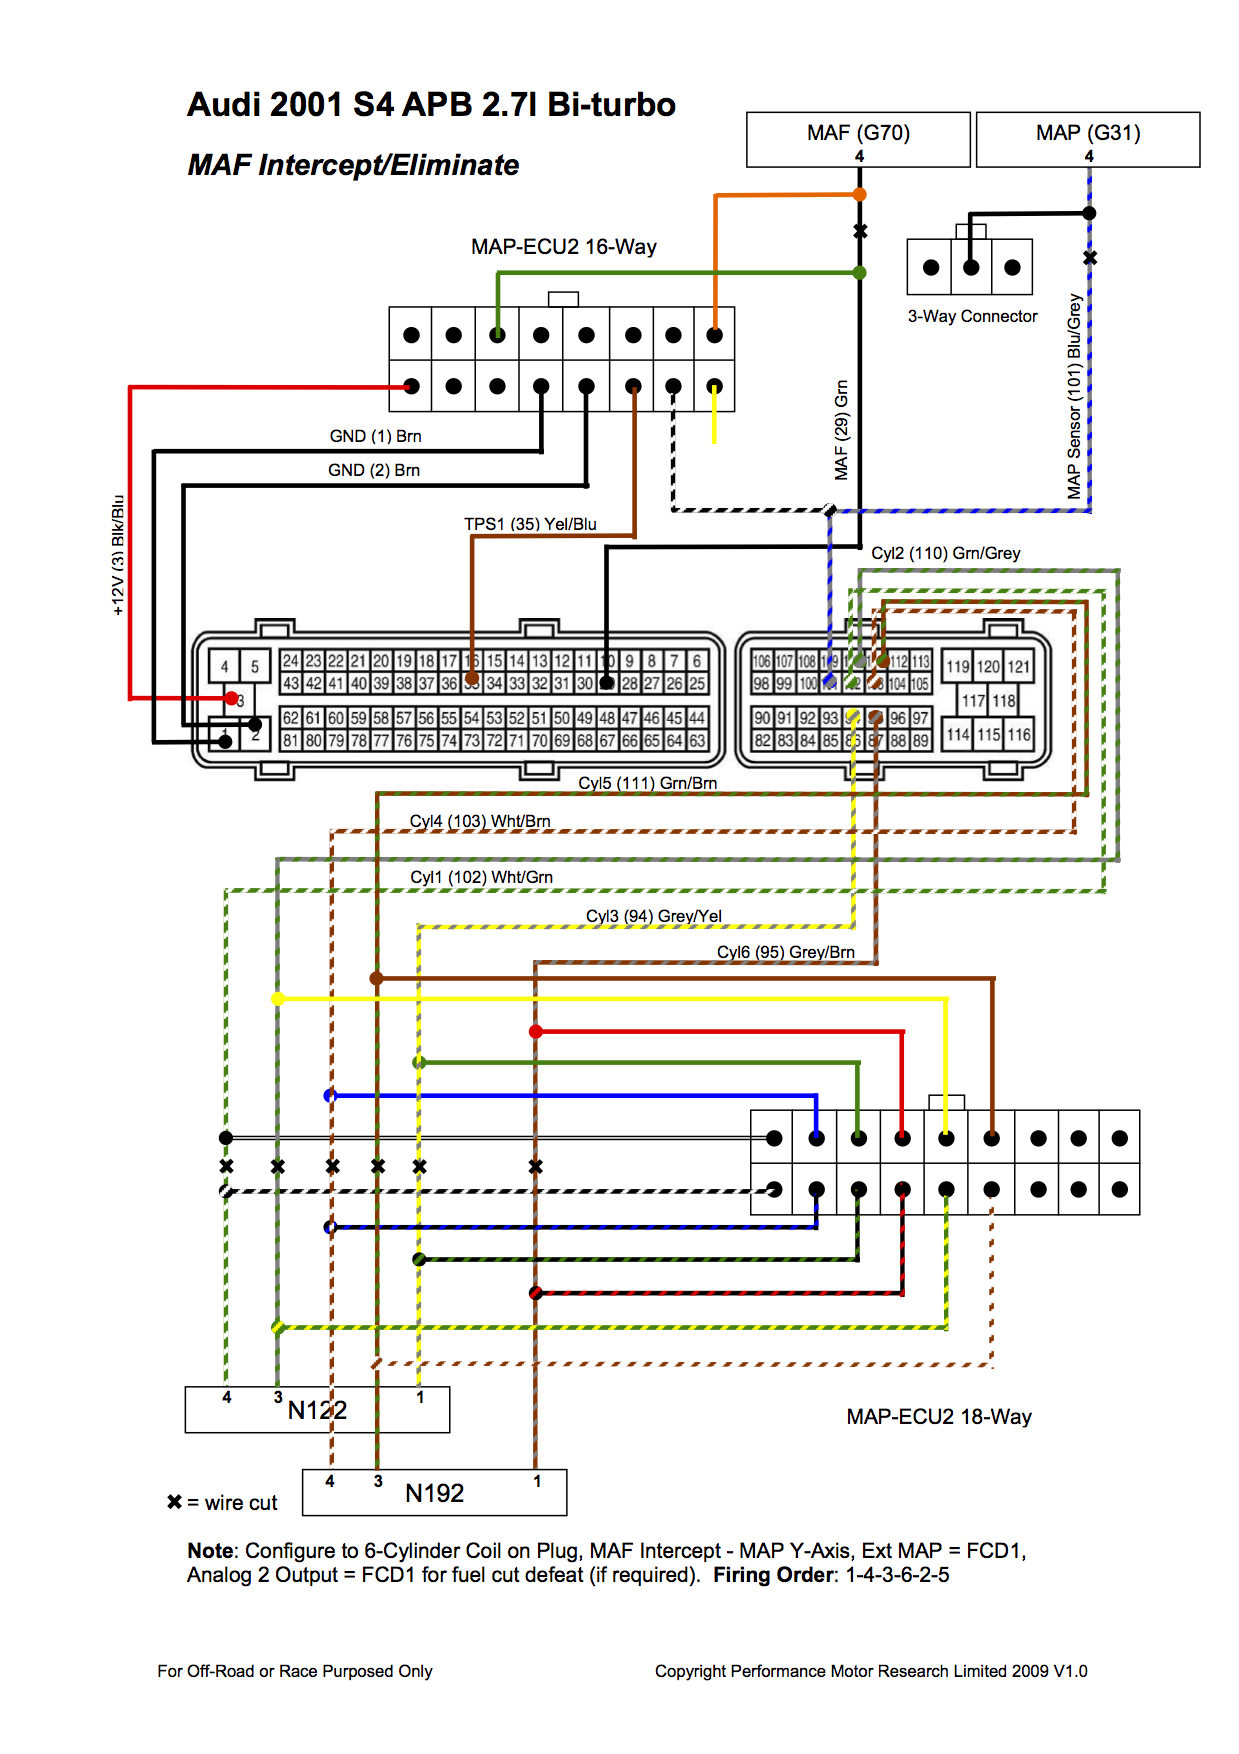 Toyota Headlight Wiring Diagram Color Codes Mapecu Wiring Diagrams Audi Bmw Ford Honda Lexus